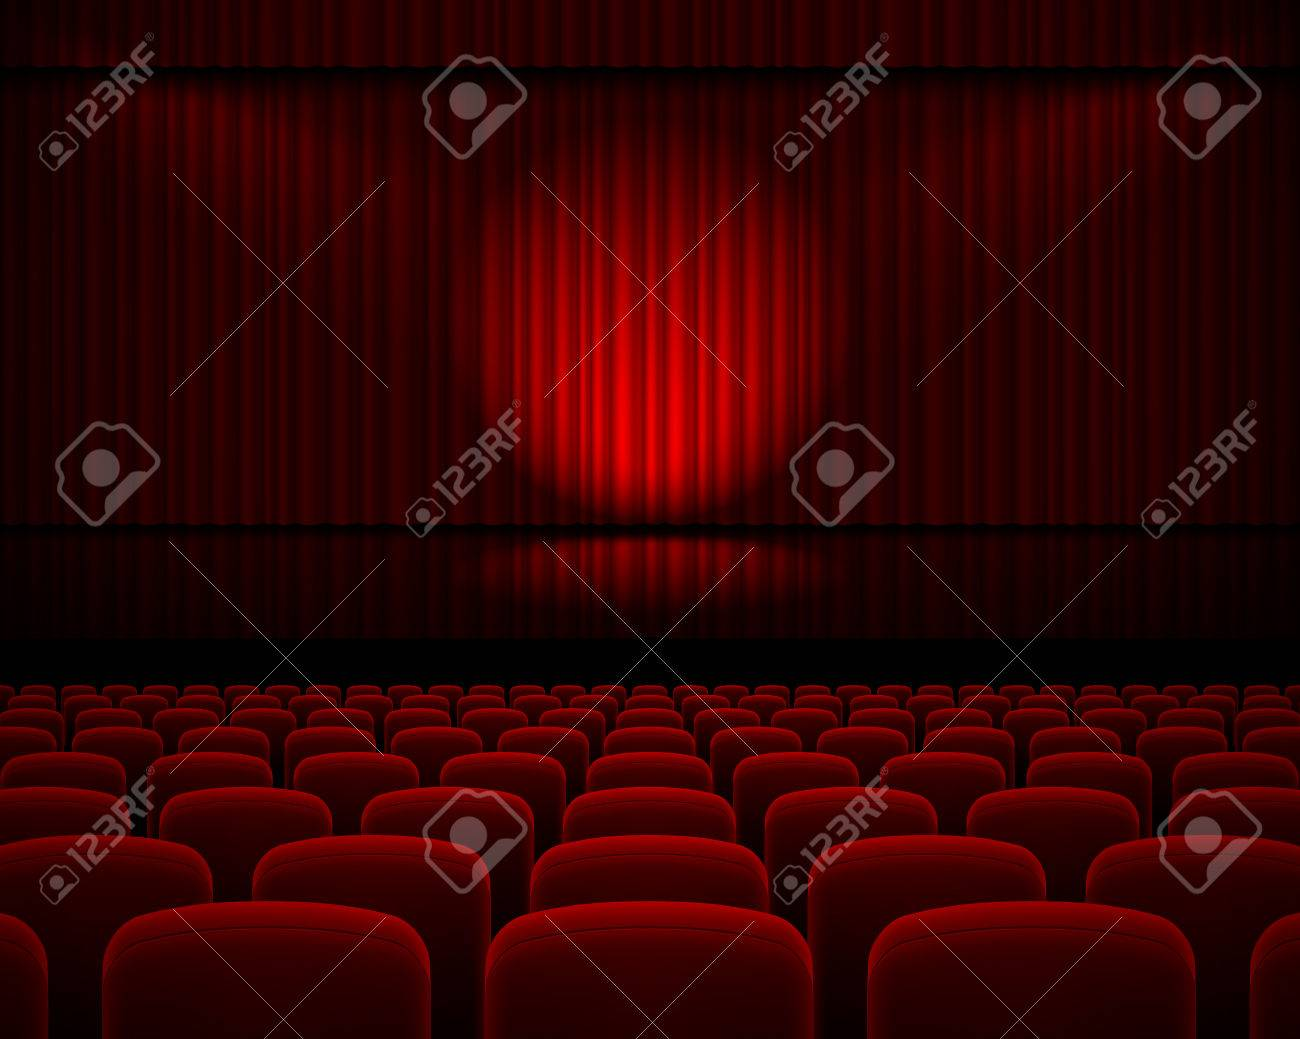 Red Curtain From The Theatre With A Spotlight And Row Chairs Stock Vector    44153039